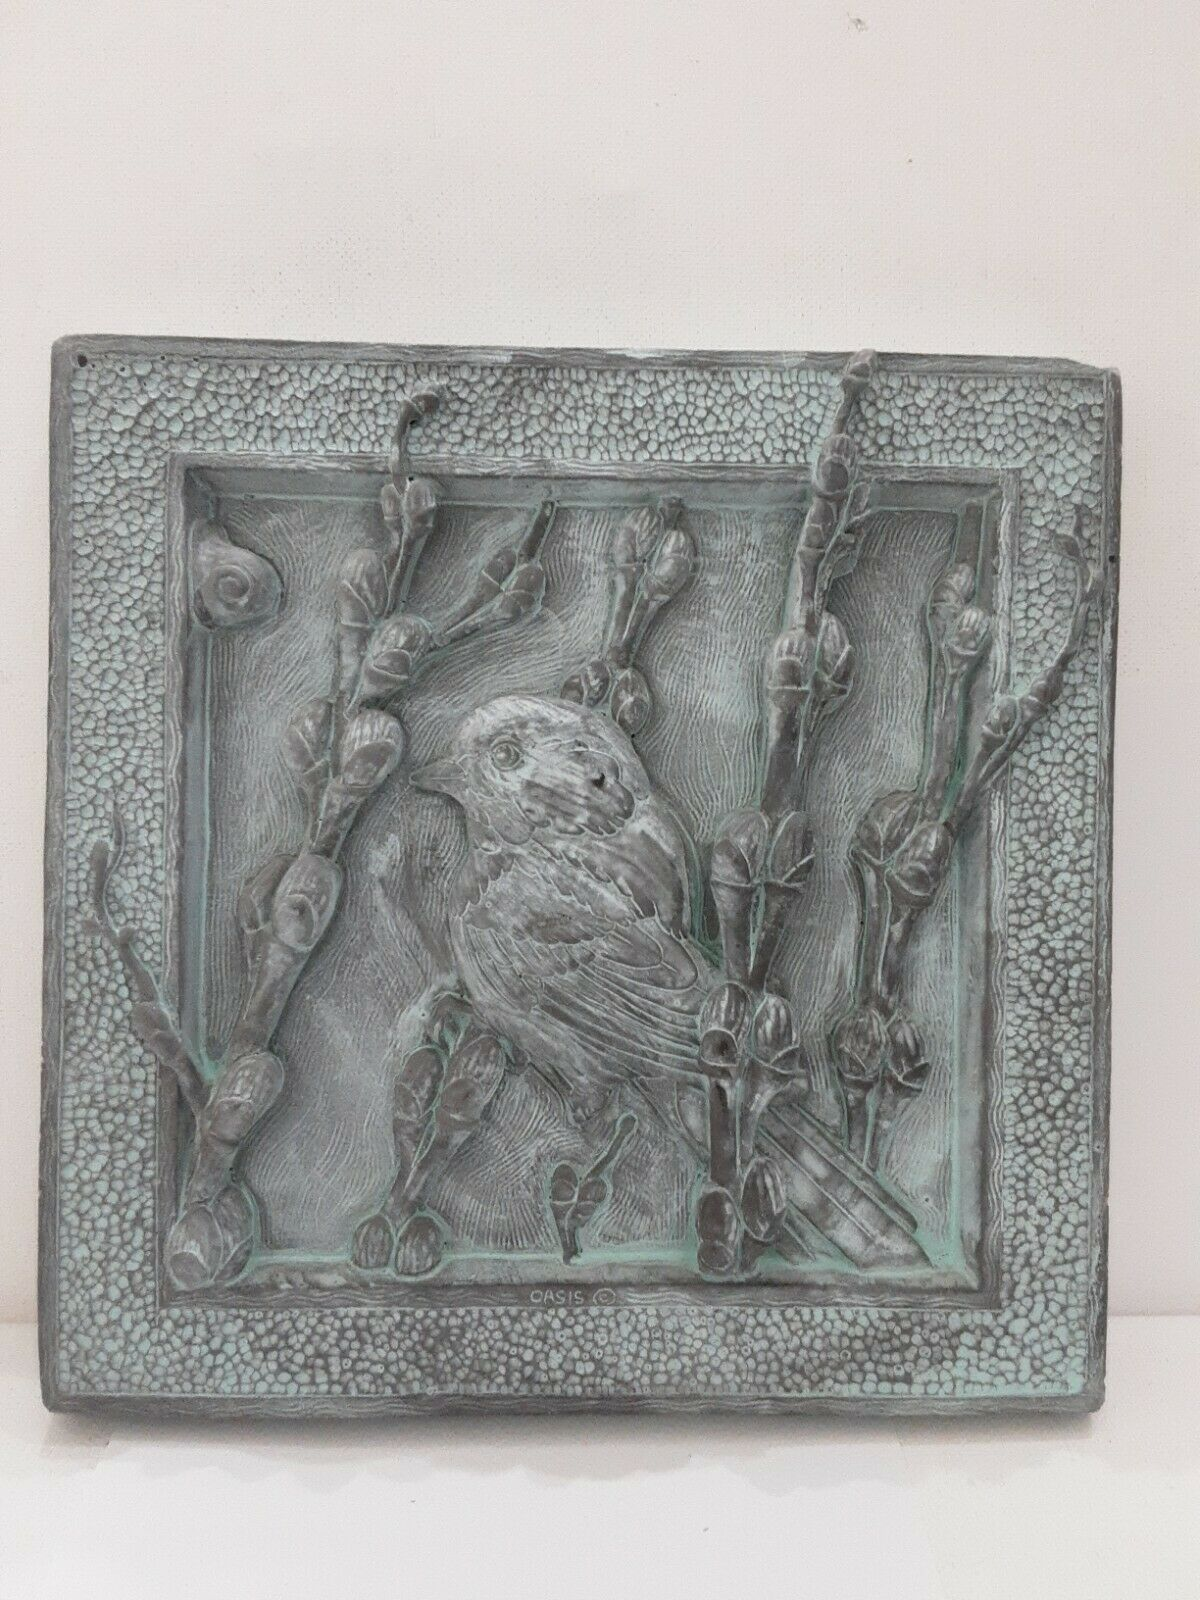 Handcrafted Bird Tile Art Stone Cast Garden Wall Plaque By George Shadford 1998